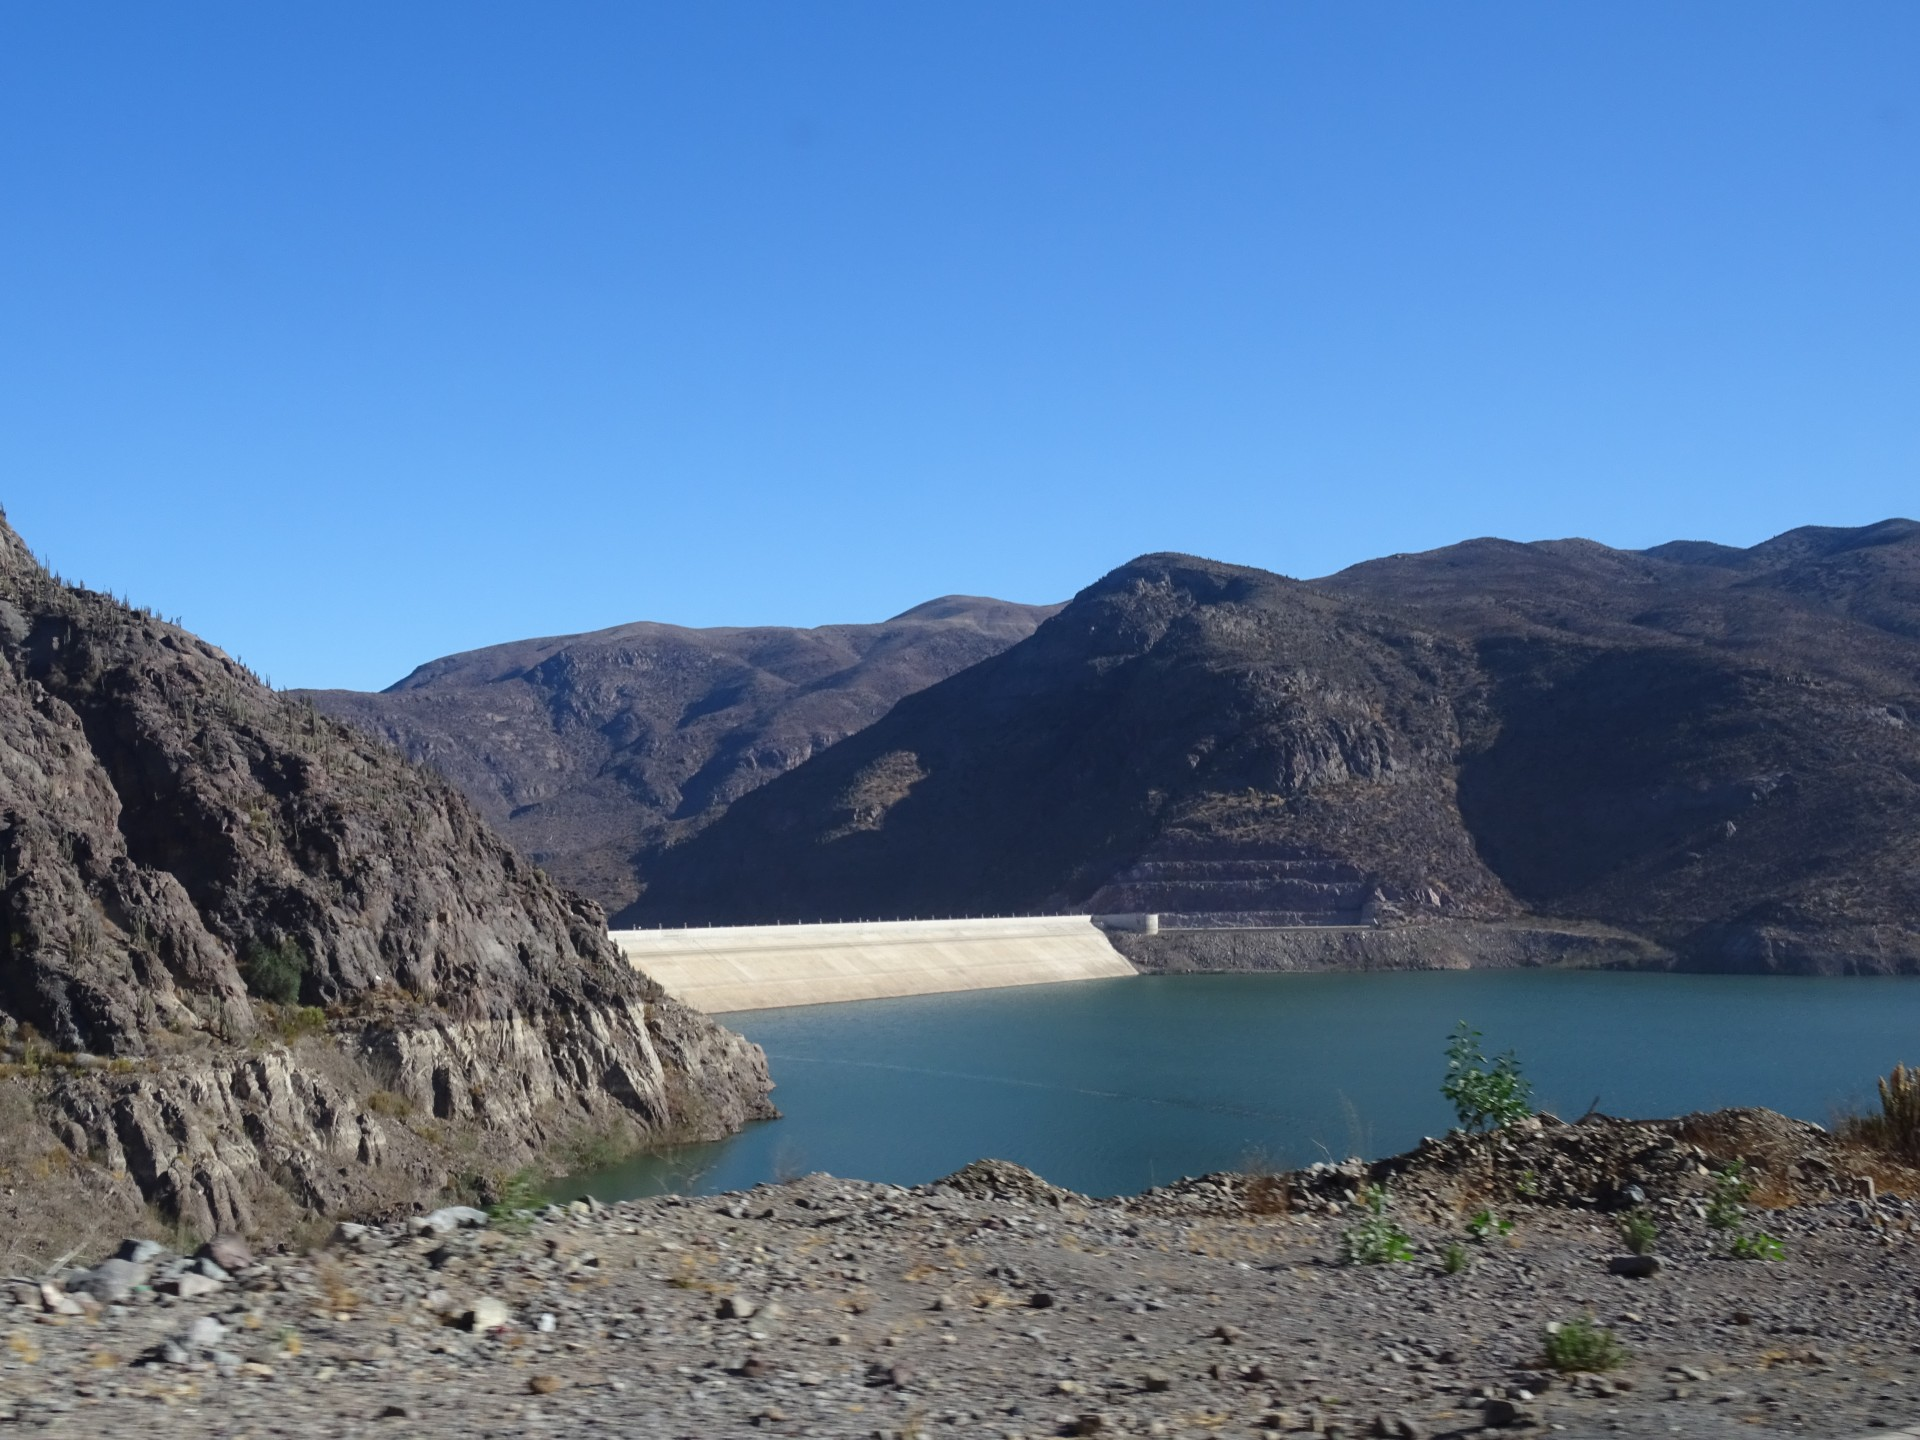 A dam on the way to Pisco Elqui.